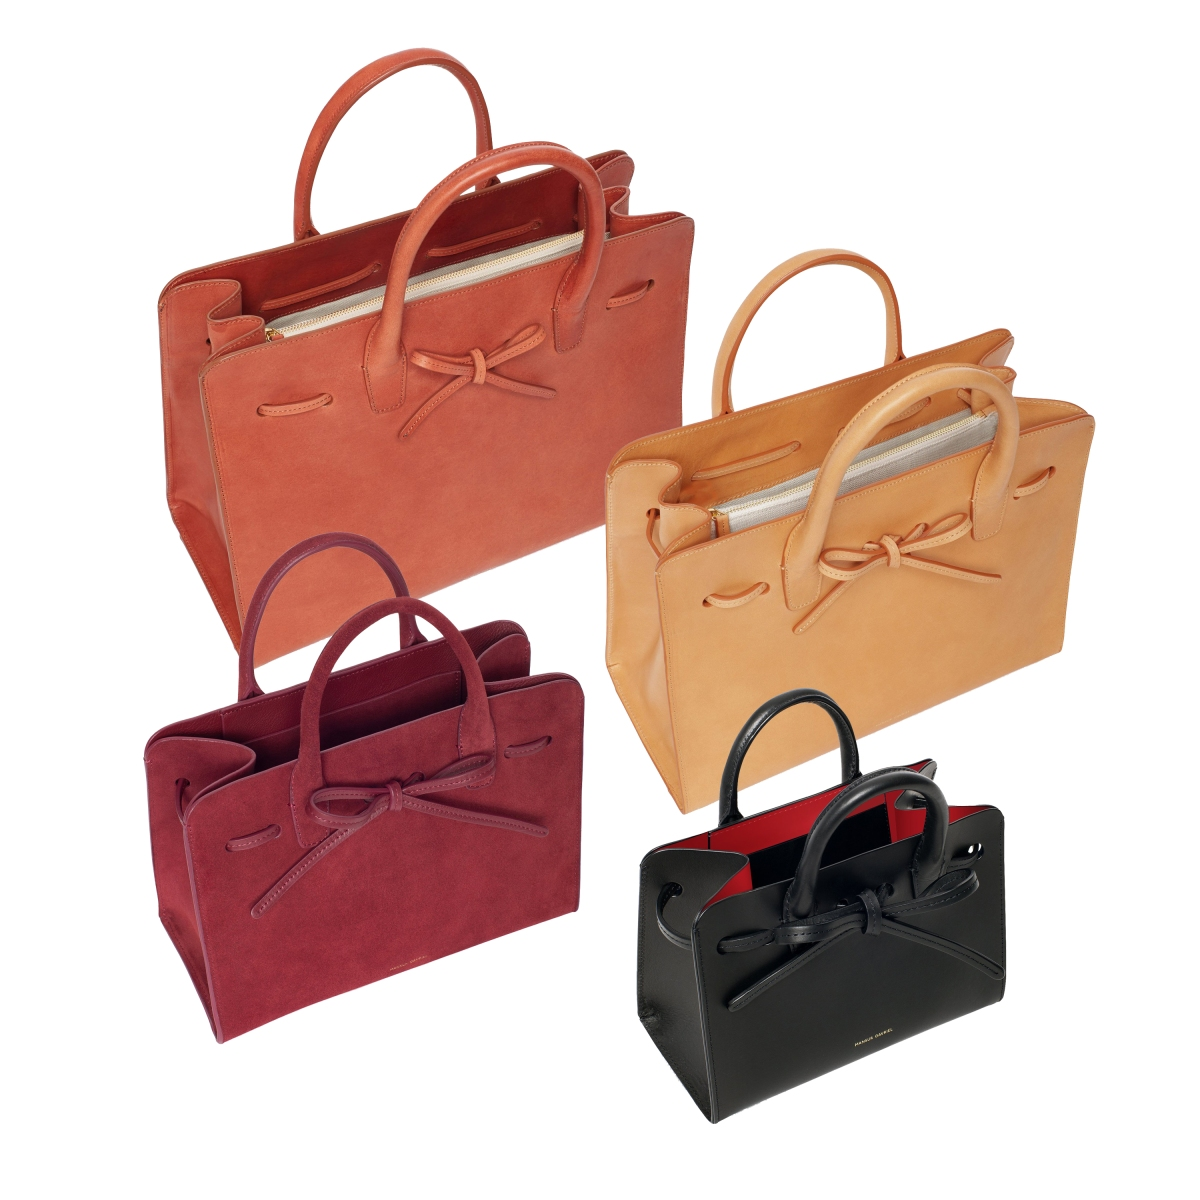 Falling In Love with Mansur Gavriel Sun Bags